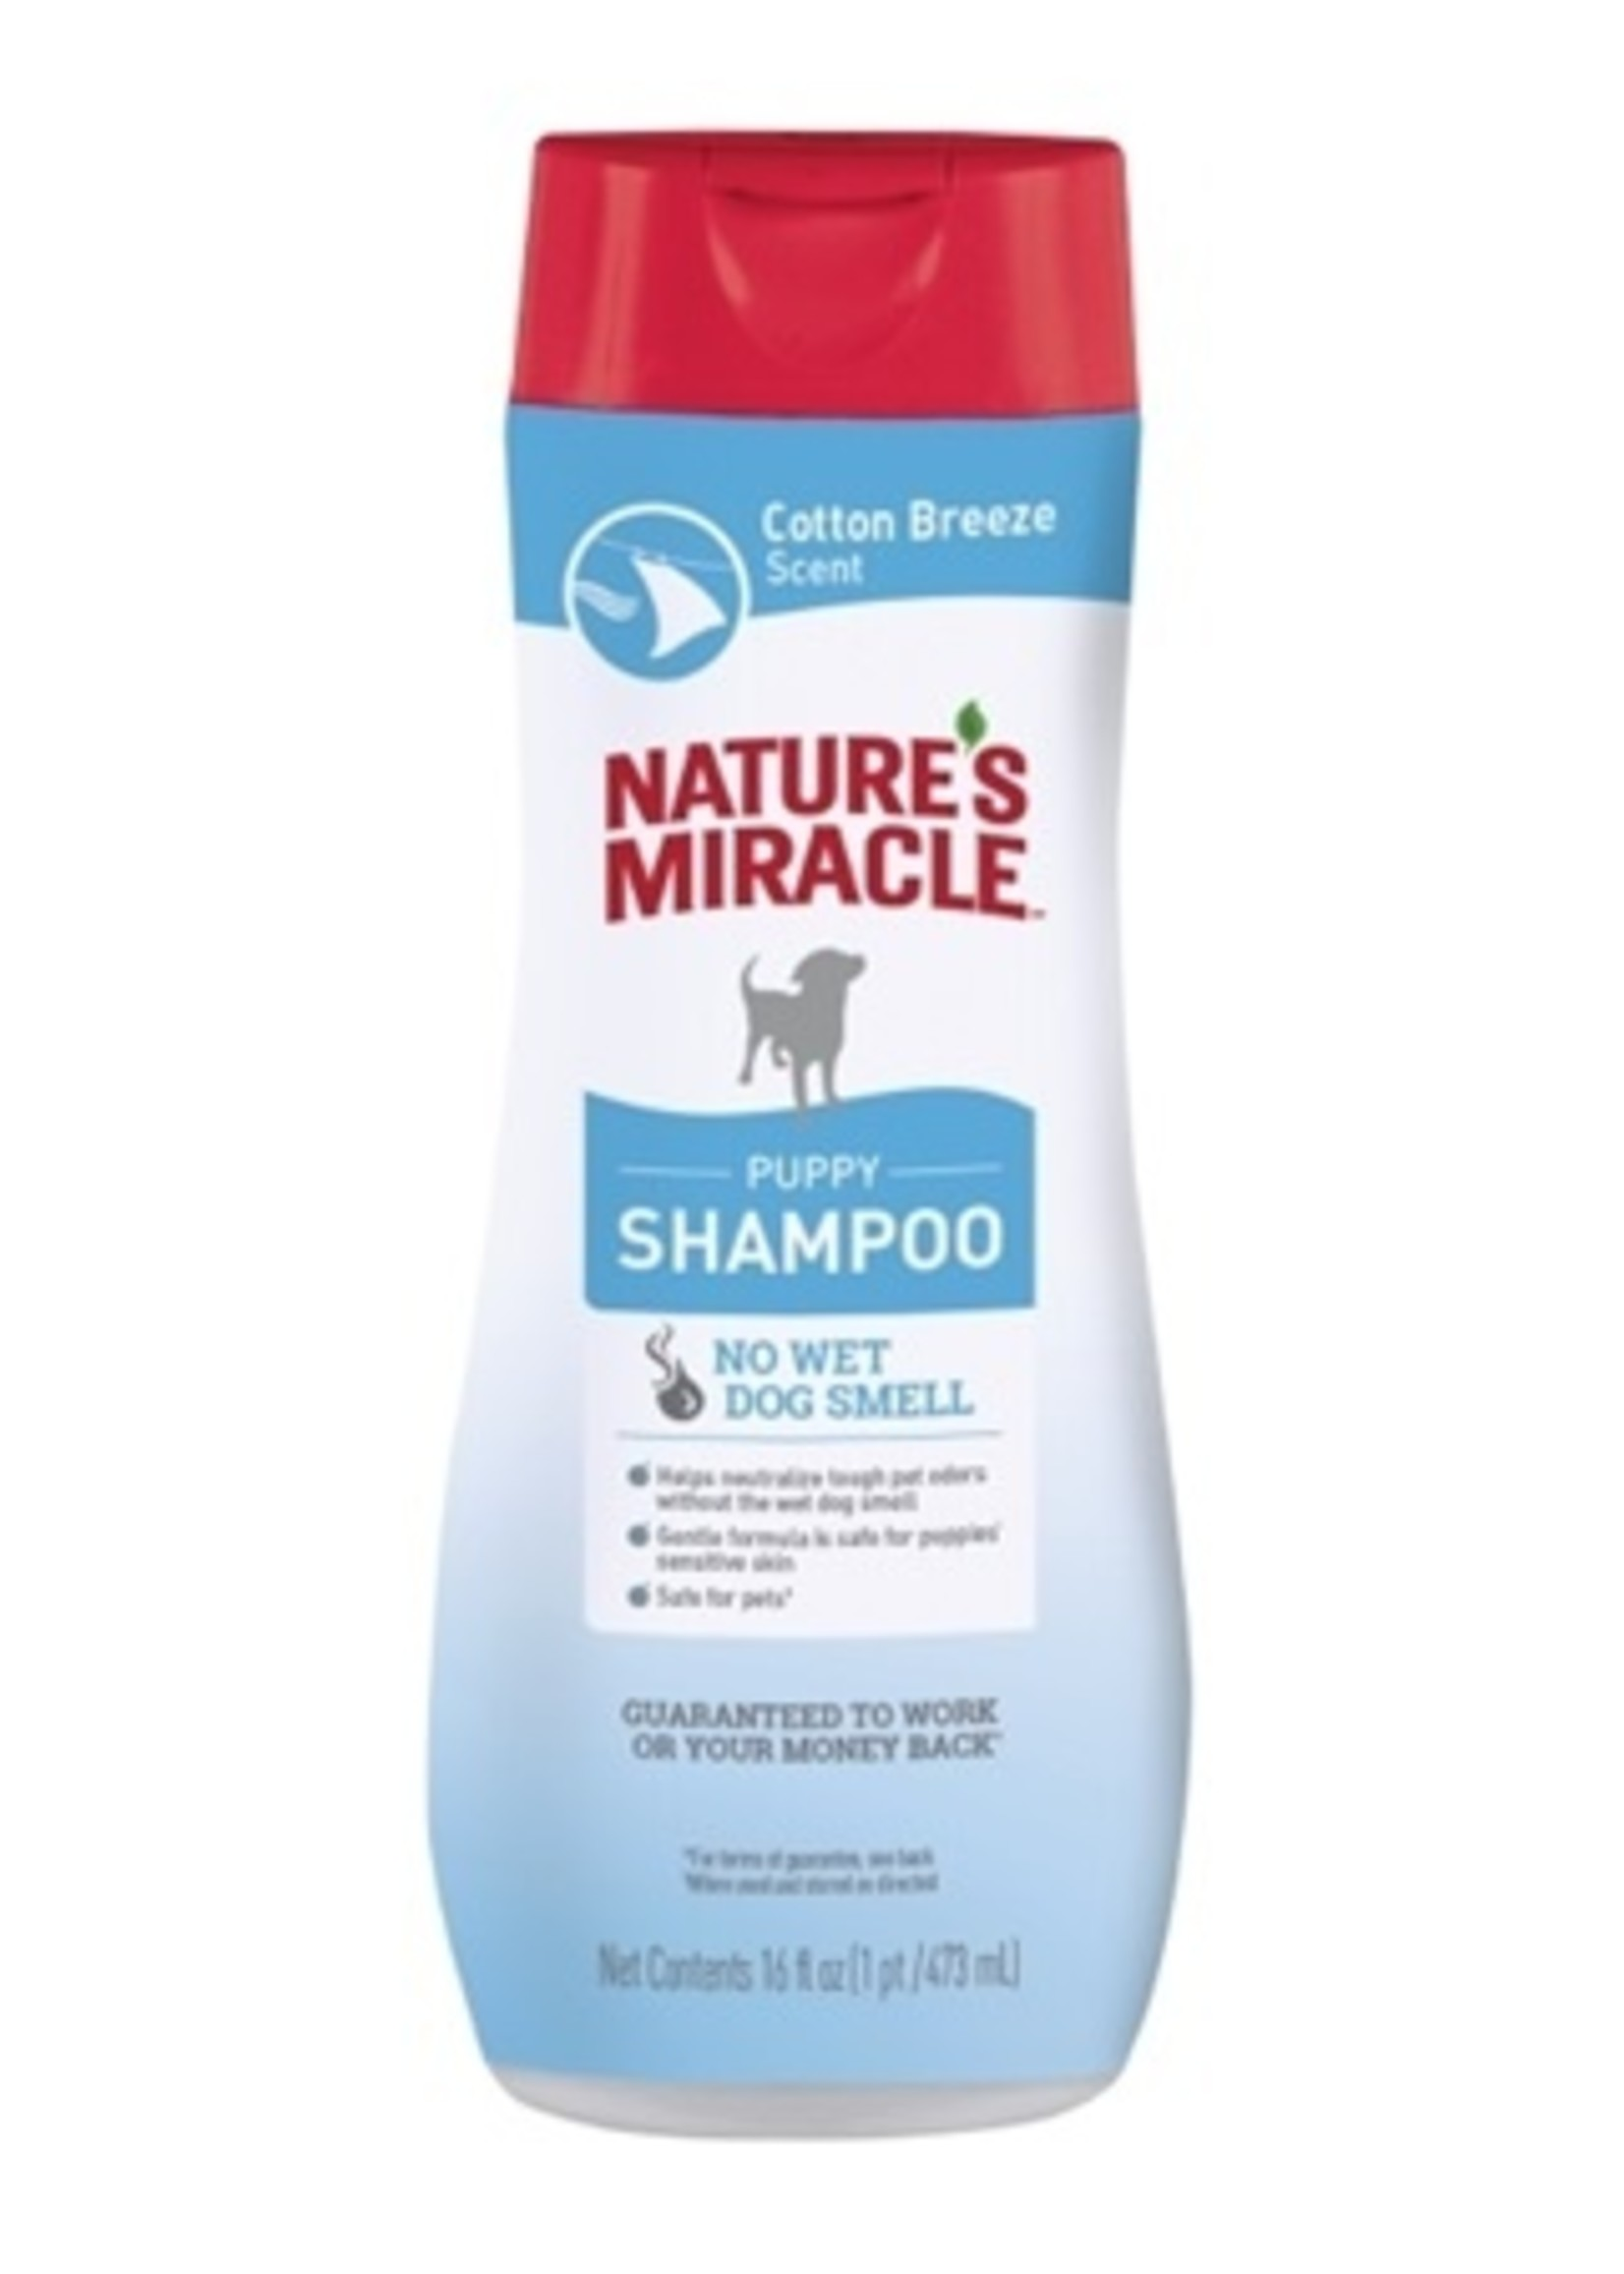 Nature's Miracle Nature's Miracle Puppy Shampoo 16 oz Cotton Breeze Scent